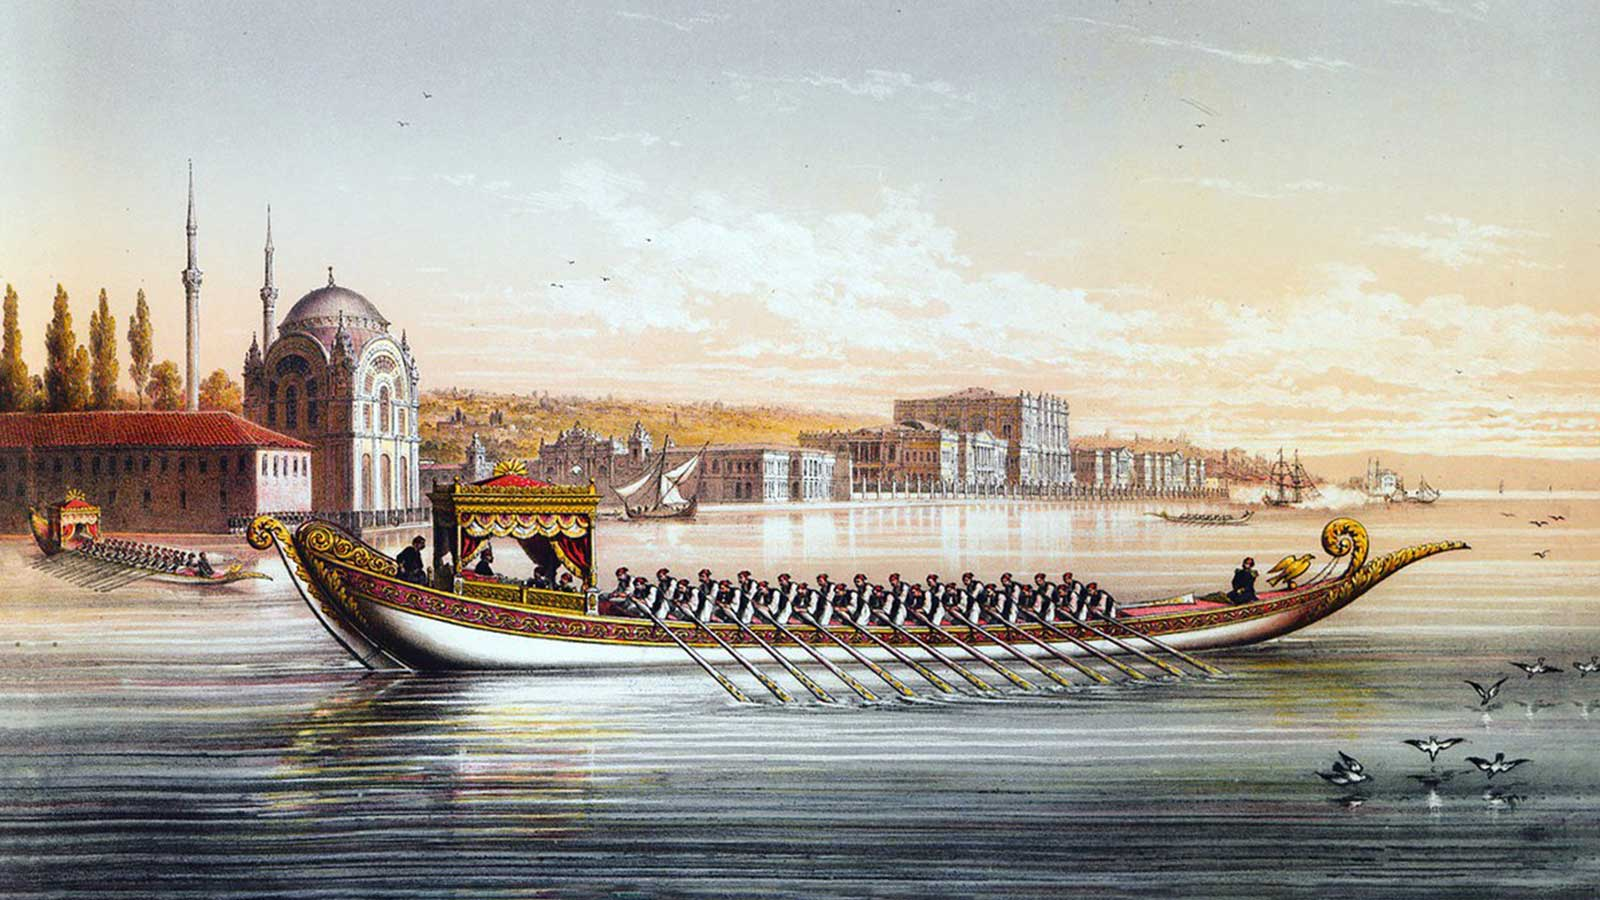 Boats and Boatmen in Old Istanbul